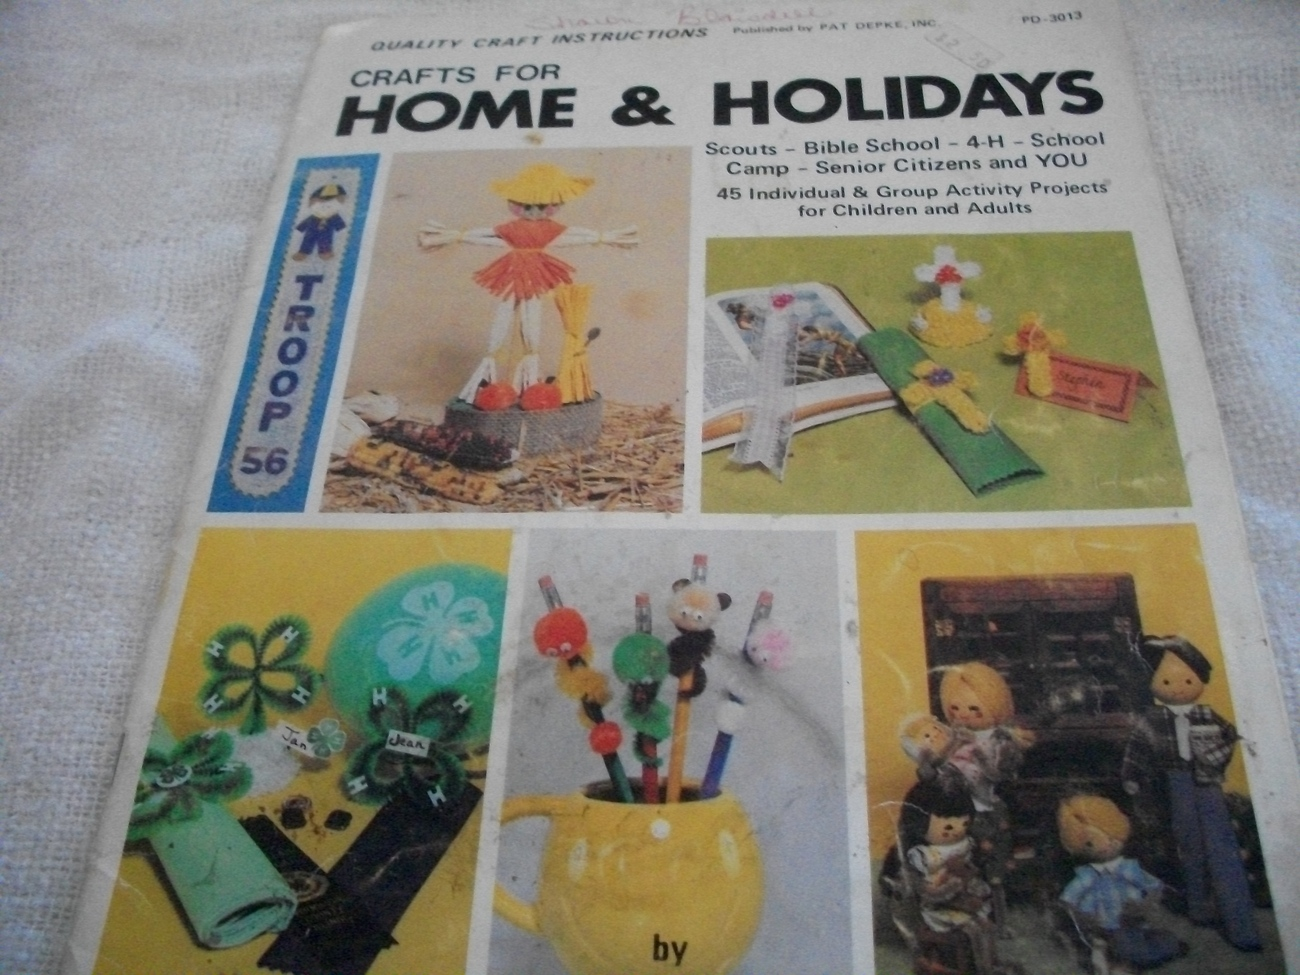 Crafts For Home & Holidays